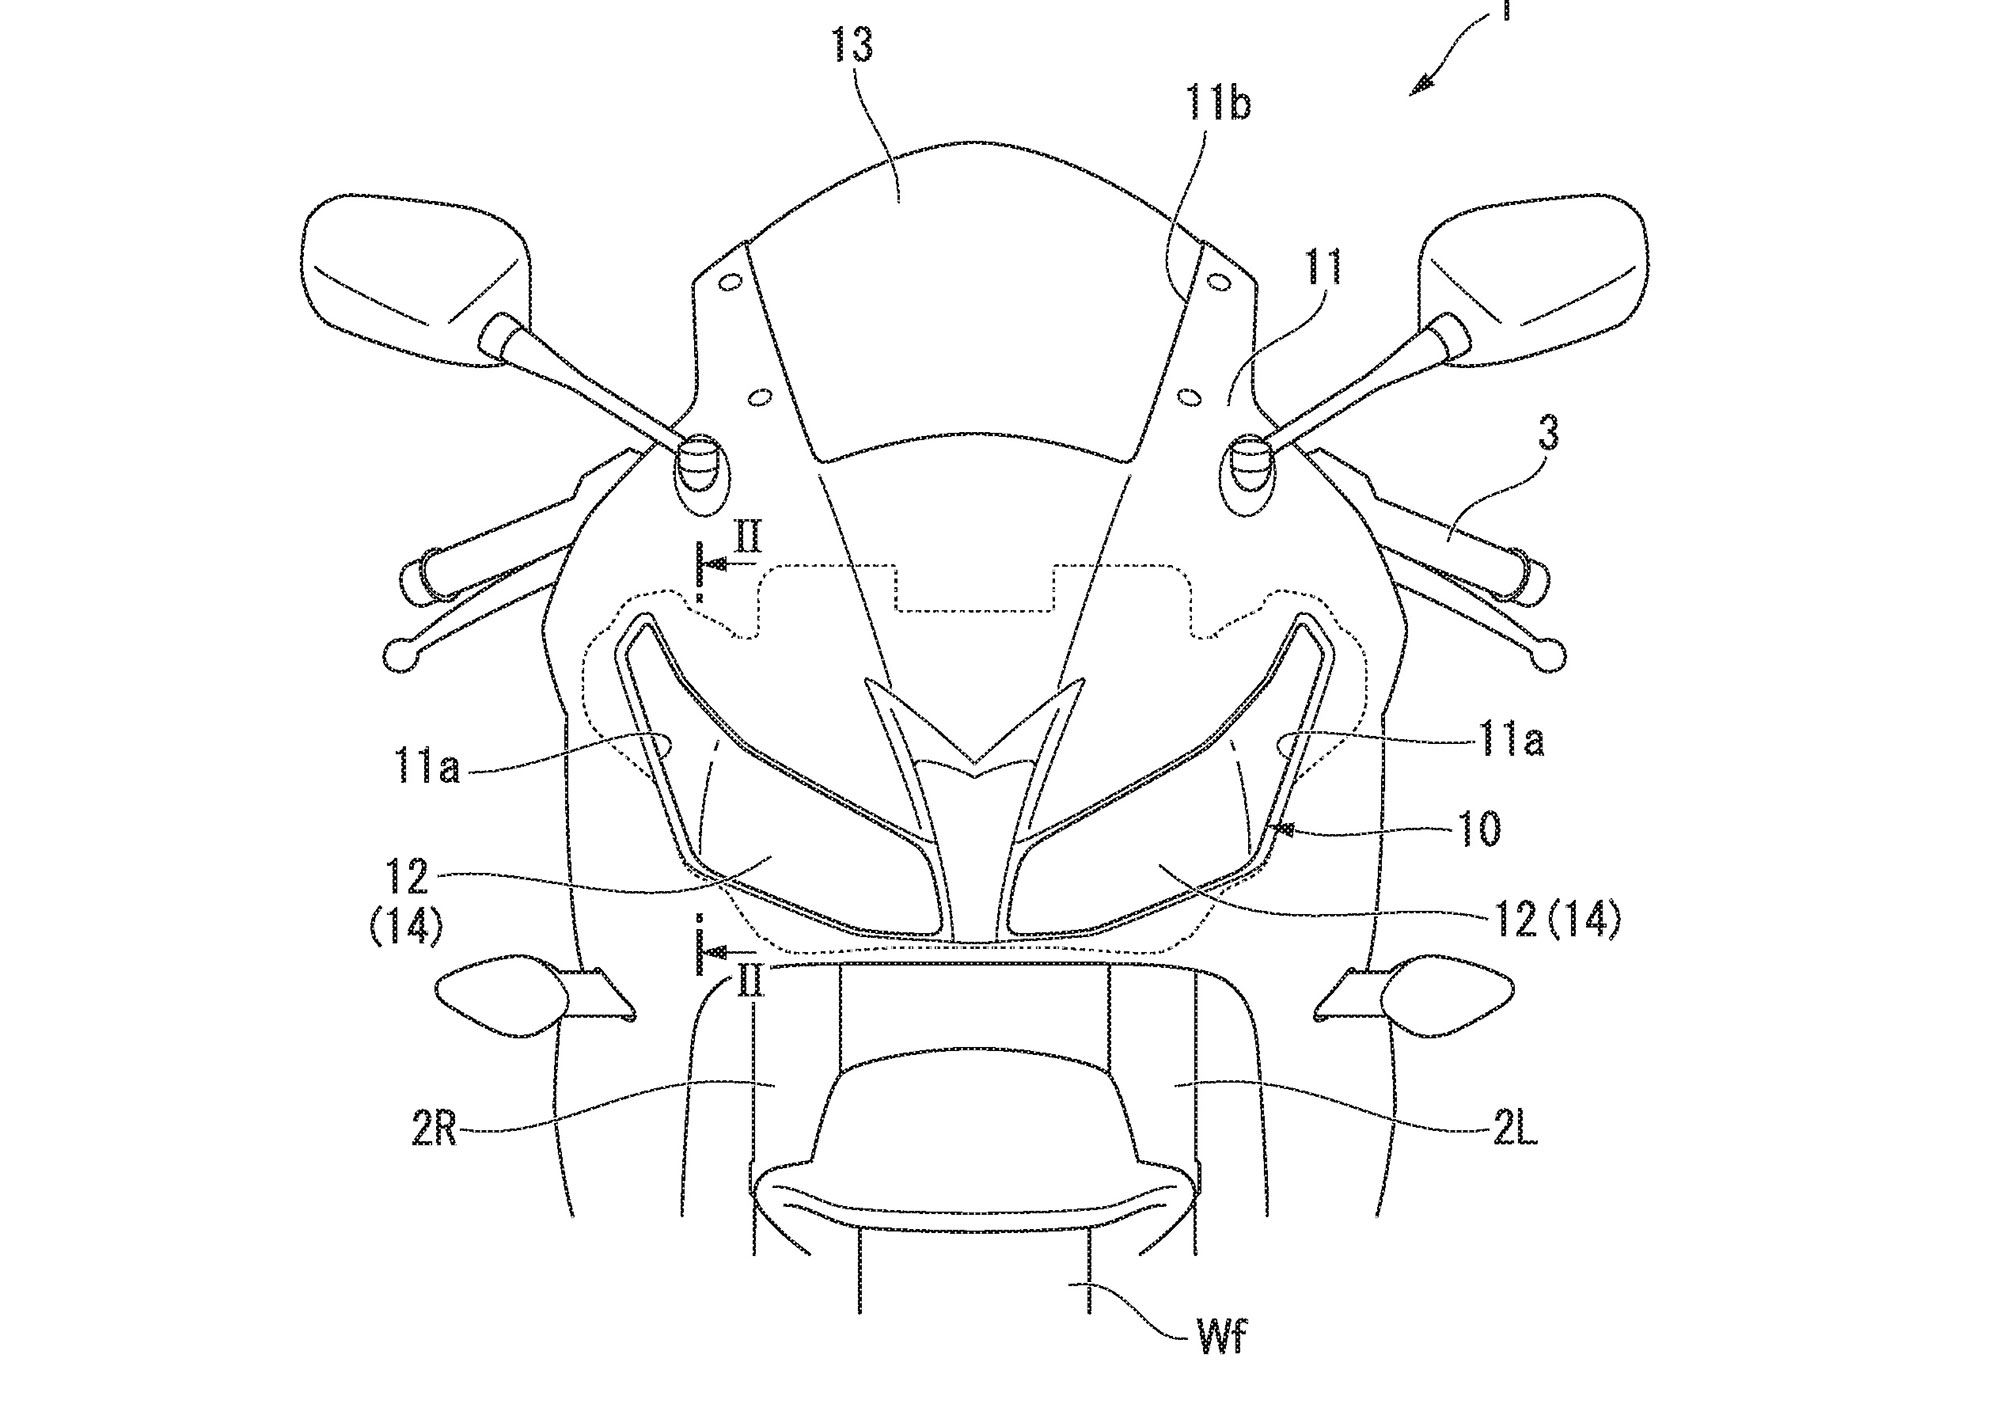 Honda's patent for motorcycle camera sensors shows they're more easily hidden (in the headlights in this case) than radar.